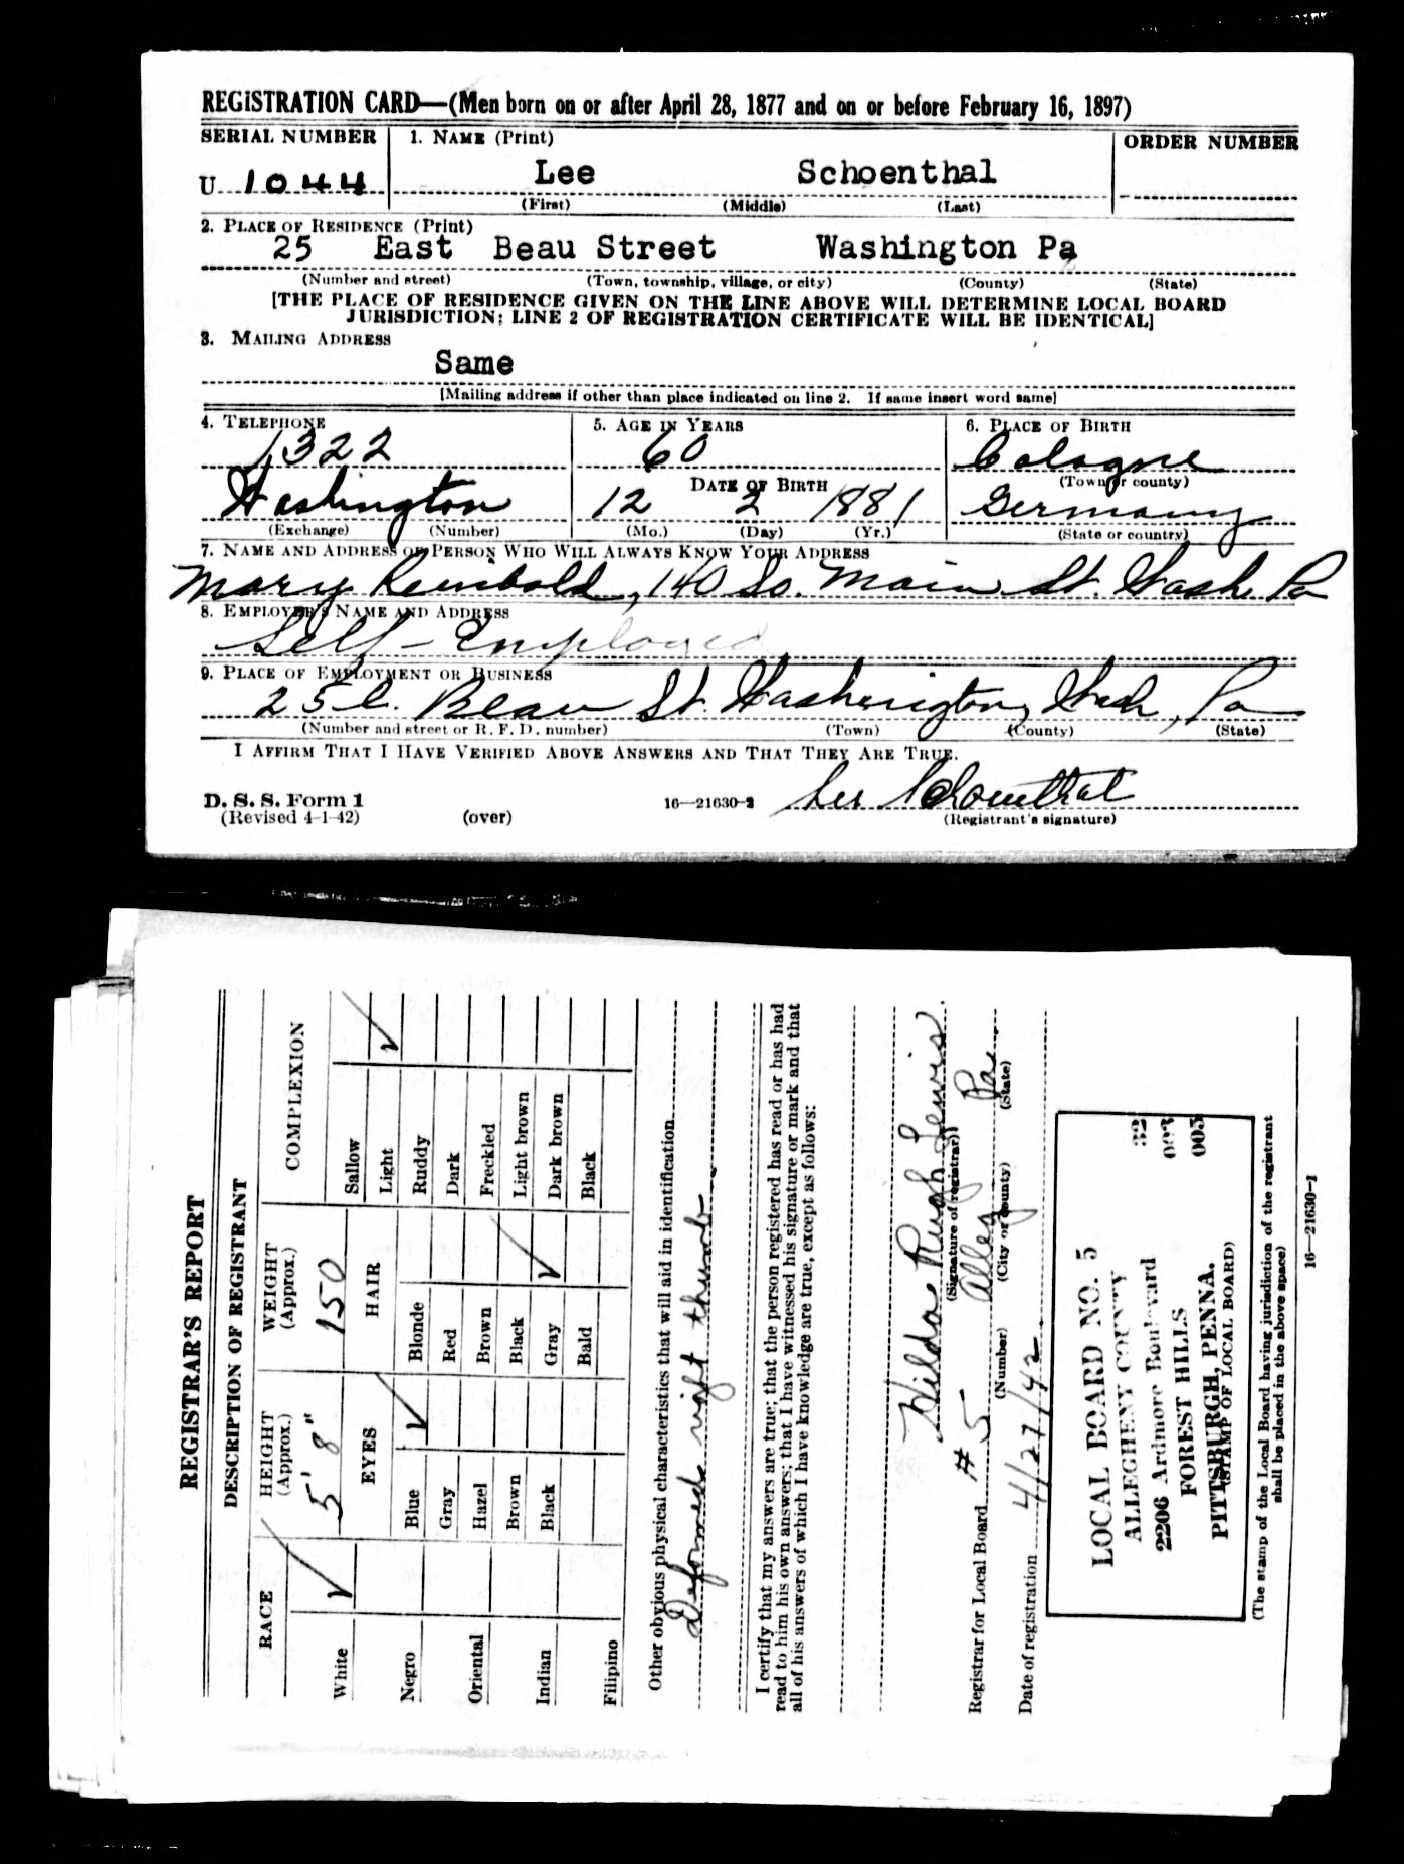 Texas brotmanblog a family journey lee schoenthal world war ii draft registration the national archives at st louis st aiddatafo Images